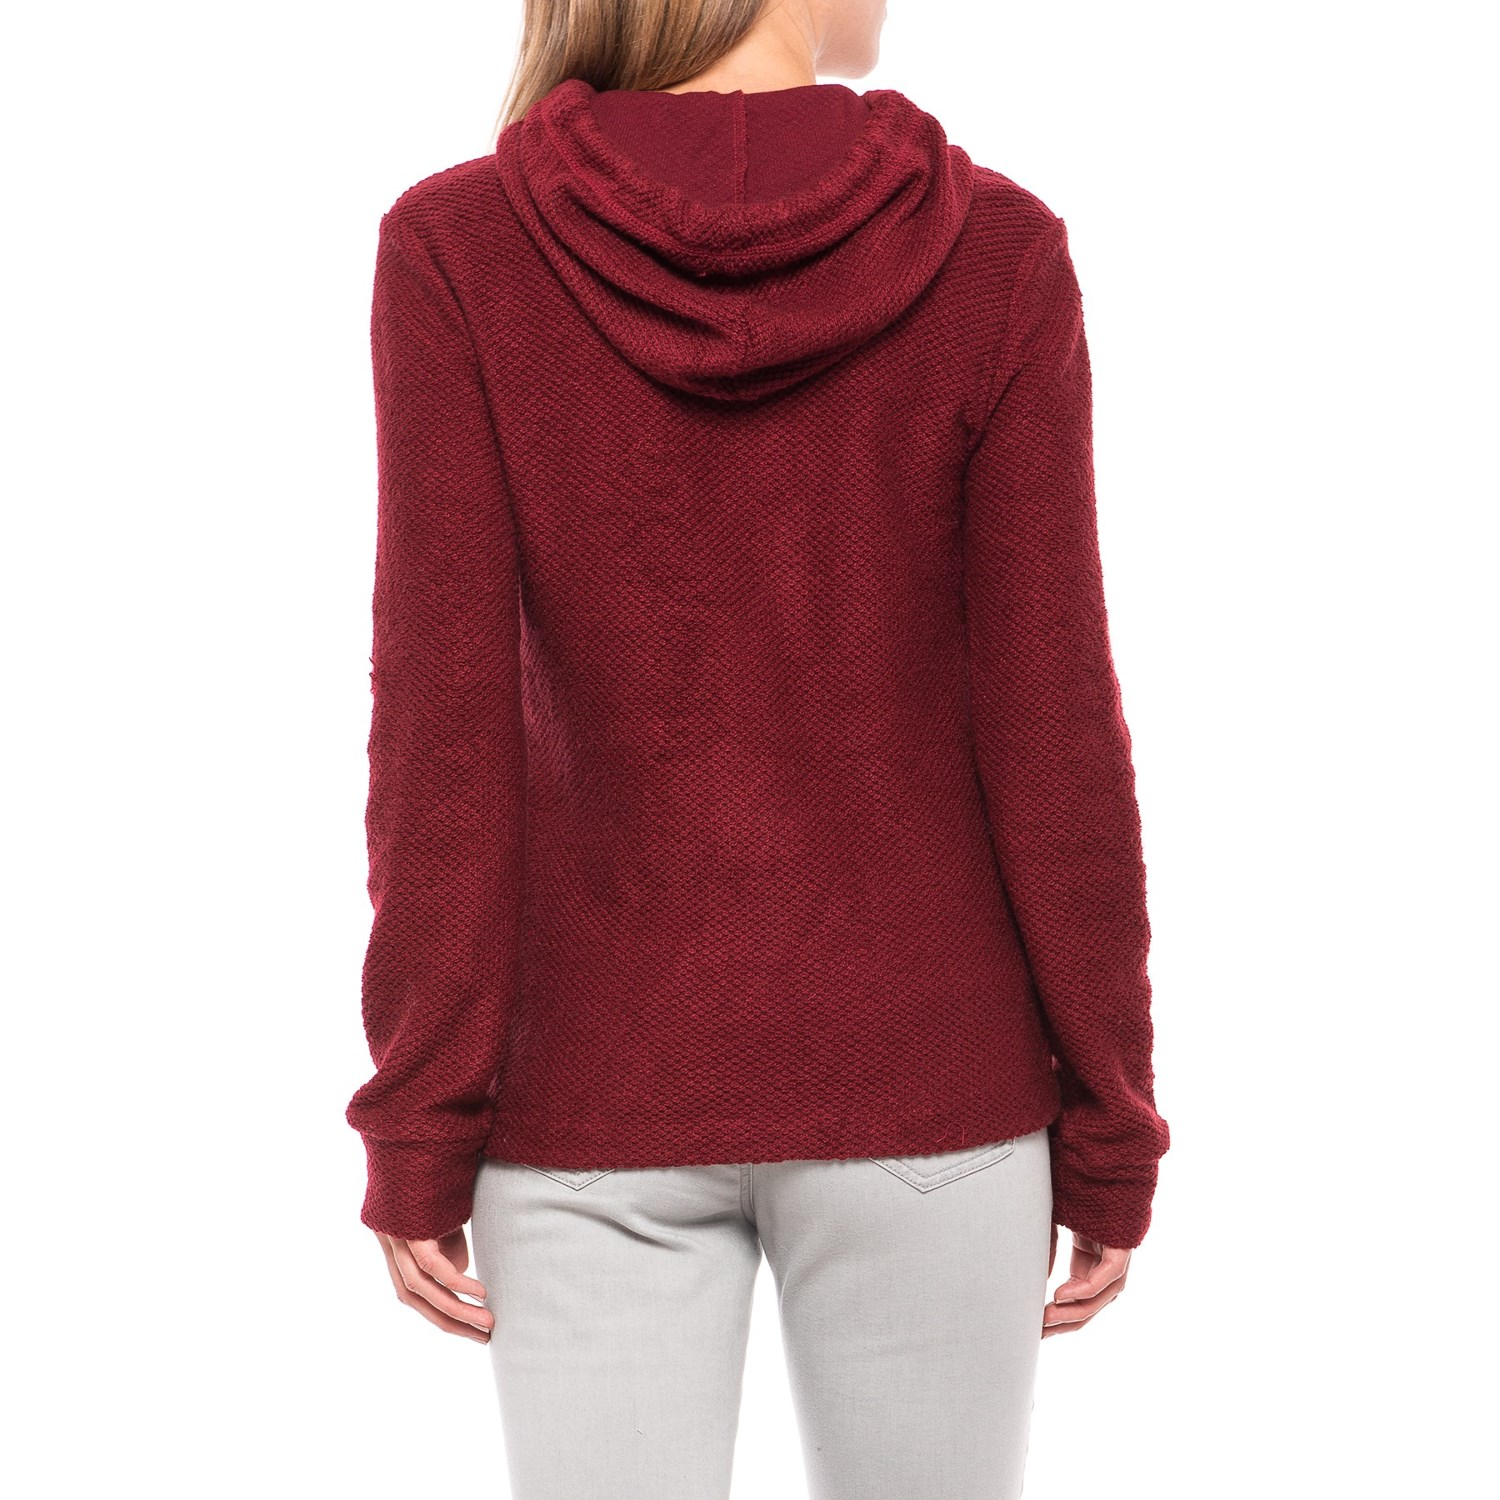 Knit Cowl Neck Sweater Hoodie (For Women) - Save 51%